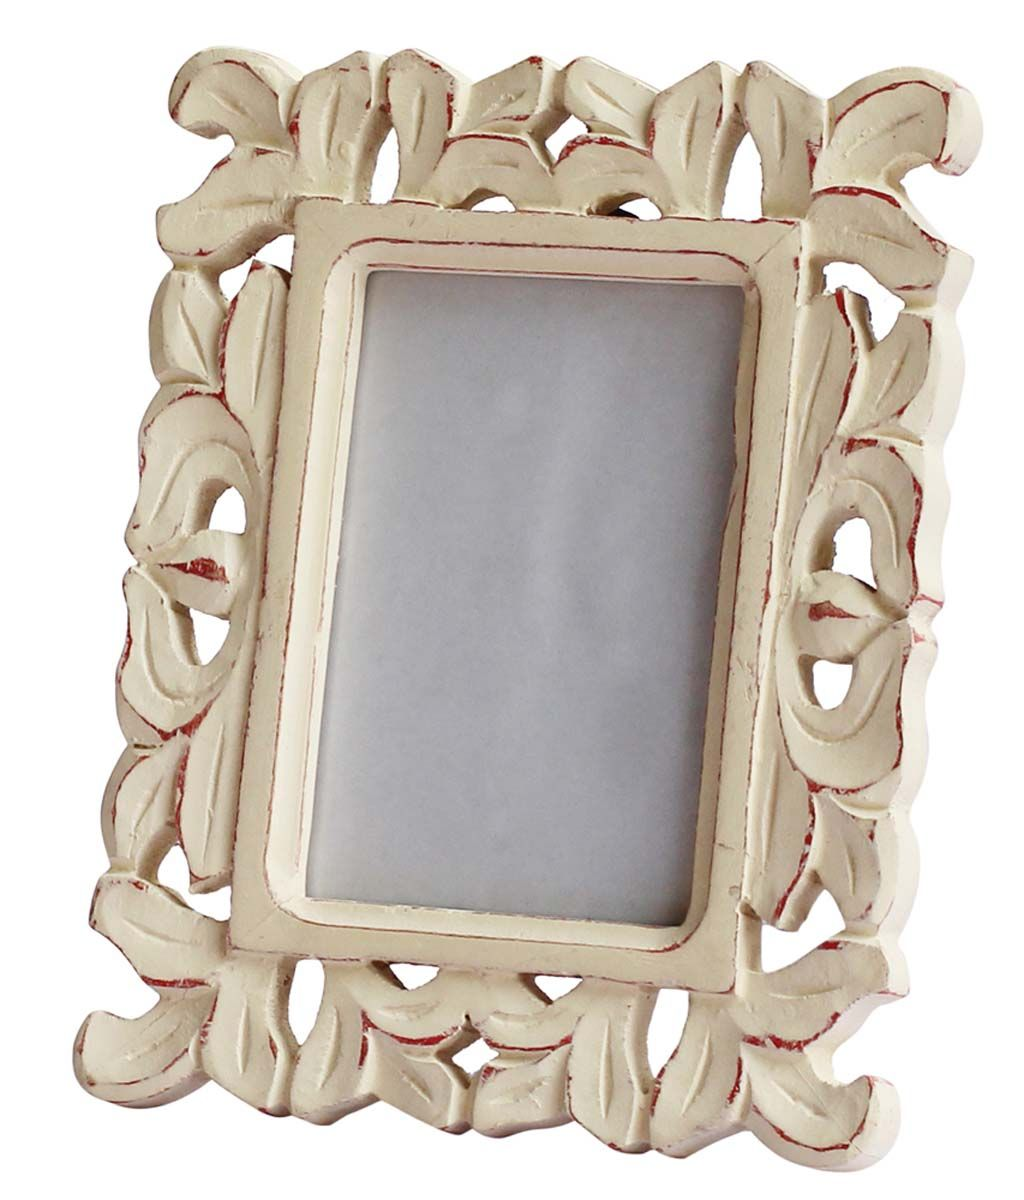 Bulk Wholesale Handmade White Picture Frame in Mango-Wood with ...